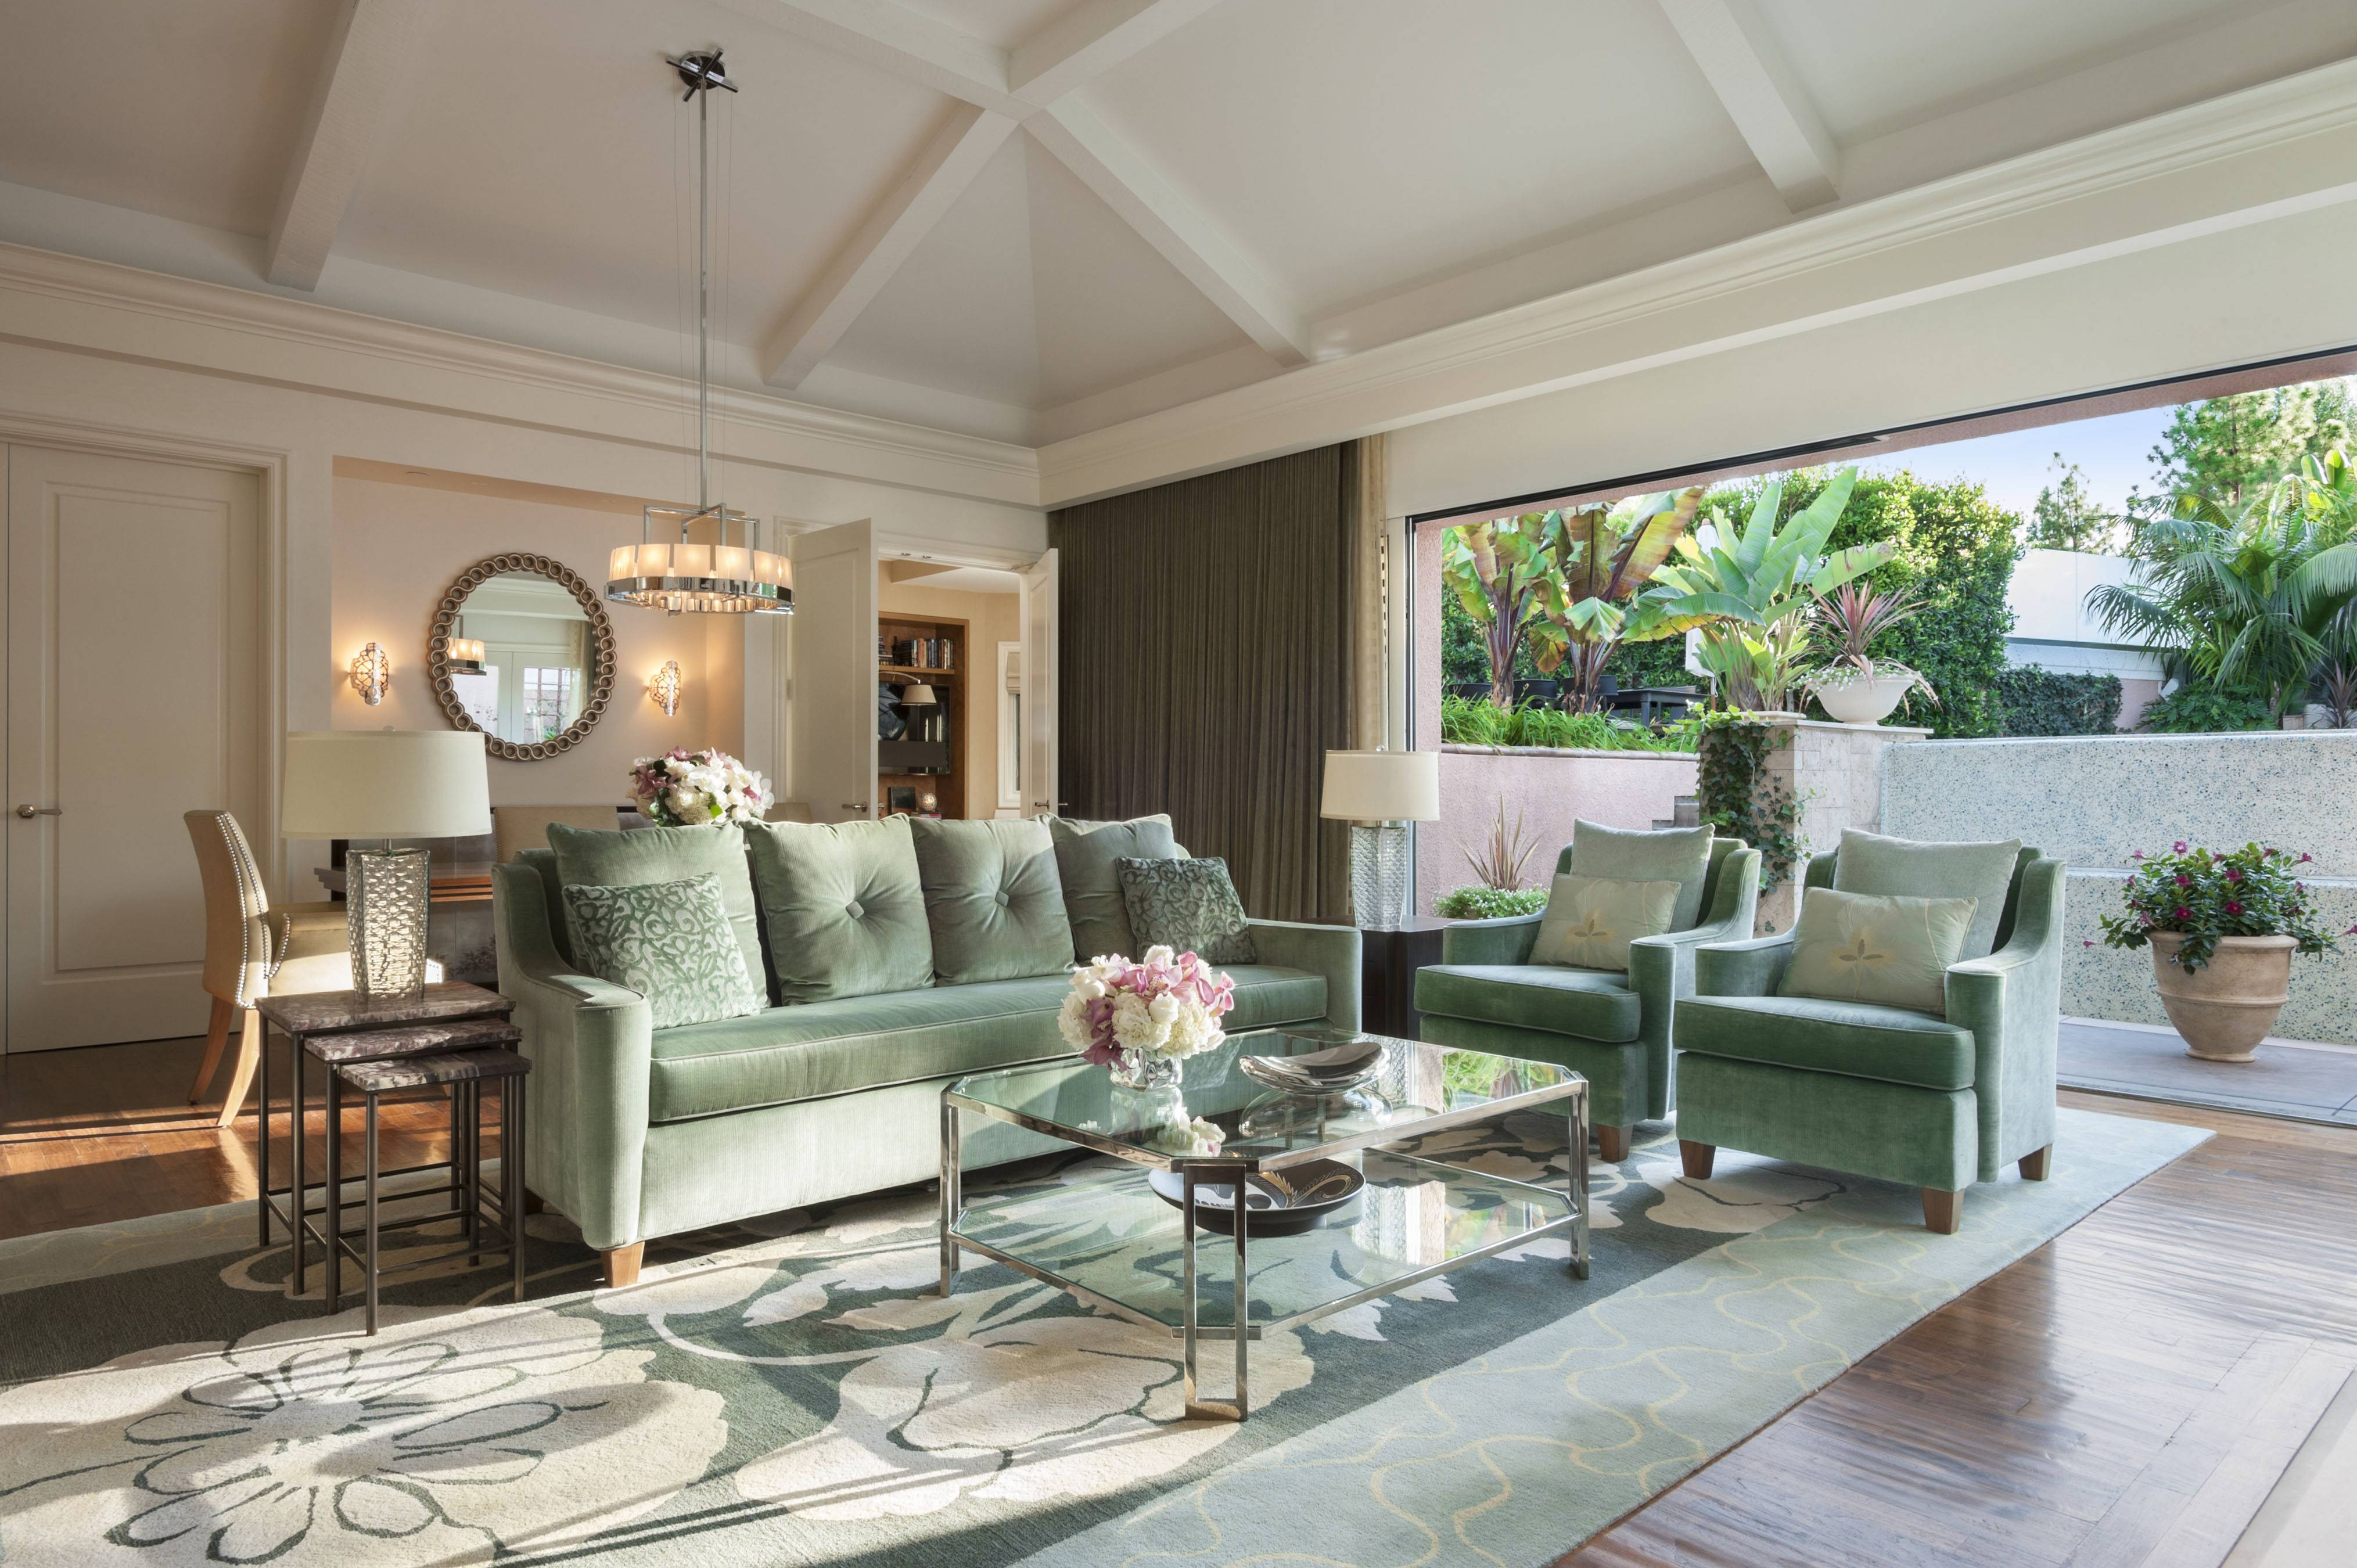 Top 5 presidential suites in los angeles orange county - Chambre toile de jouy ...